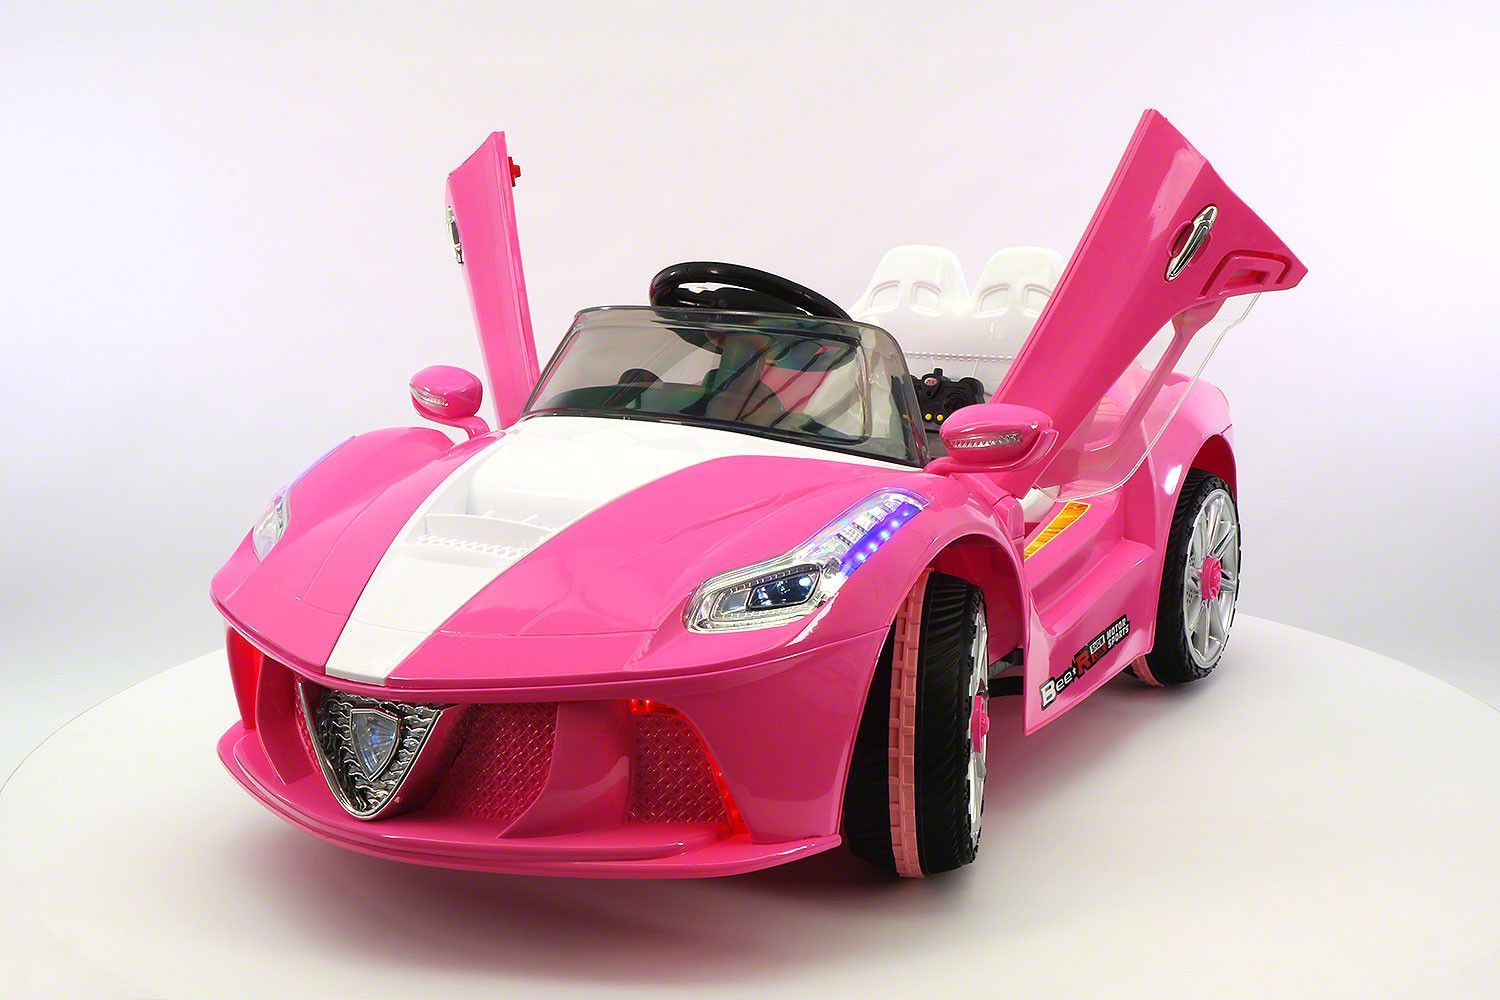 spider gt kids 12v ride on car with rc parental remote pink